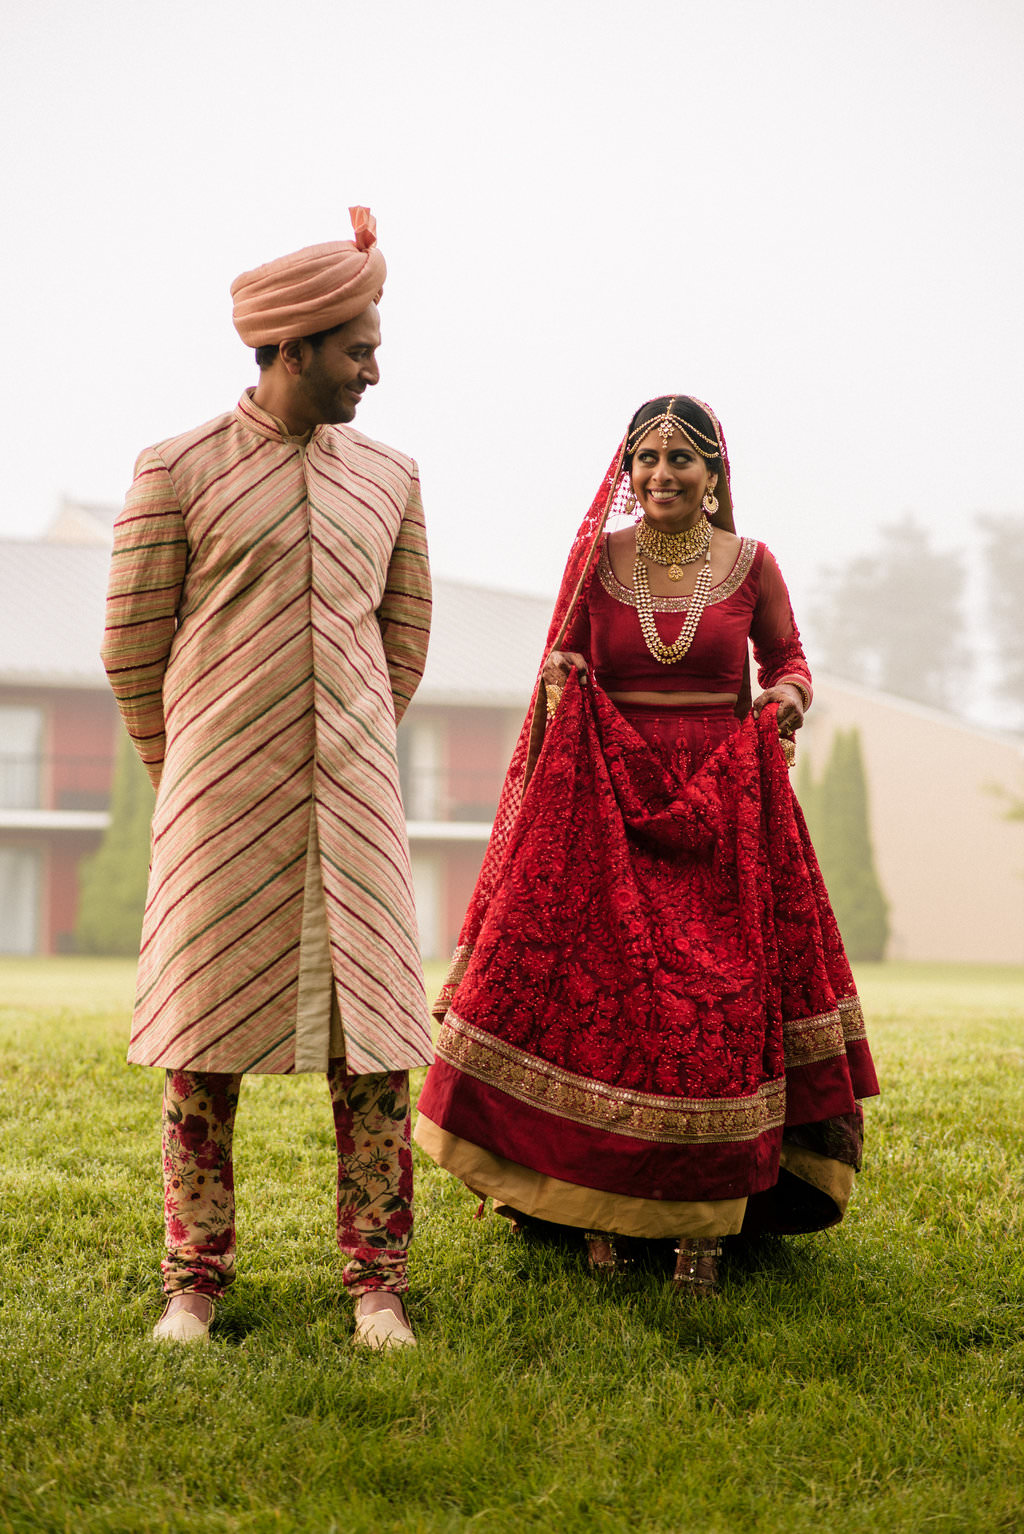 asheville_indian_wedding_photography_38.JPG